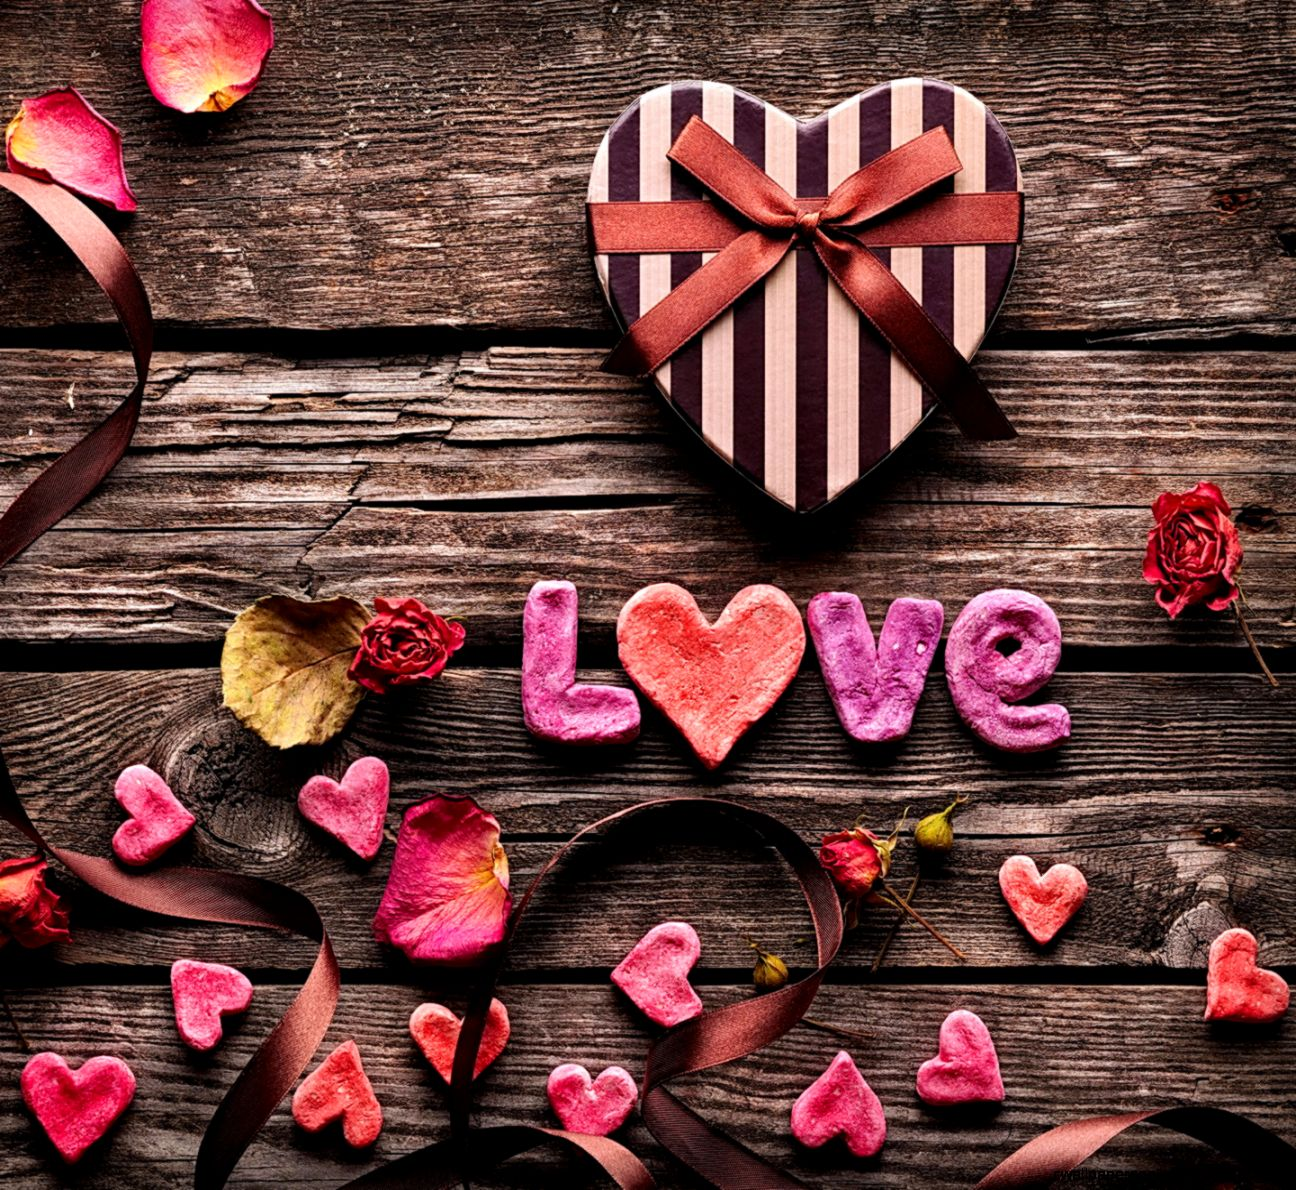 Love Wallpapers for Mobile   WallpaperSafari